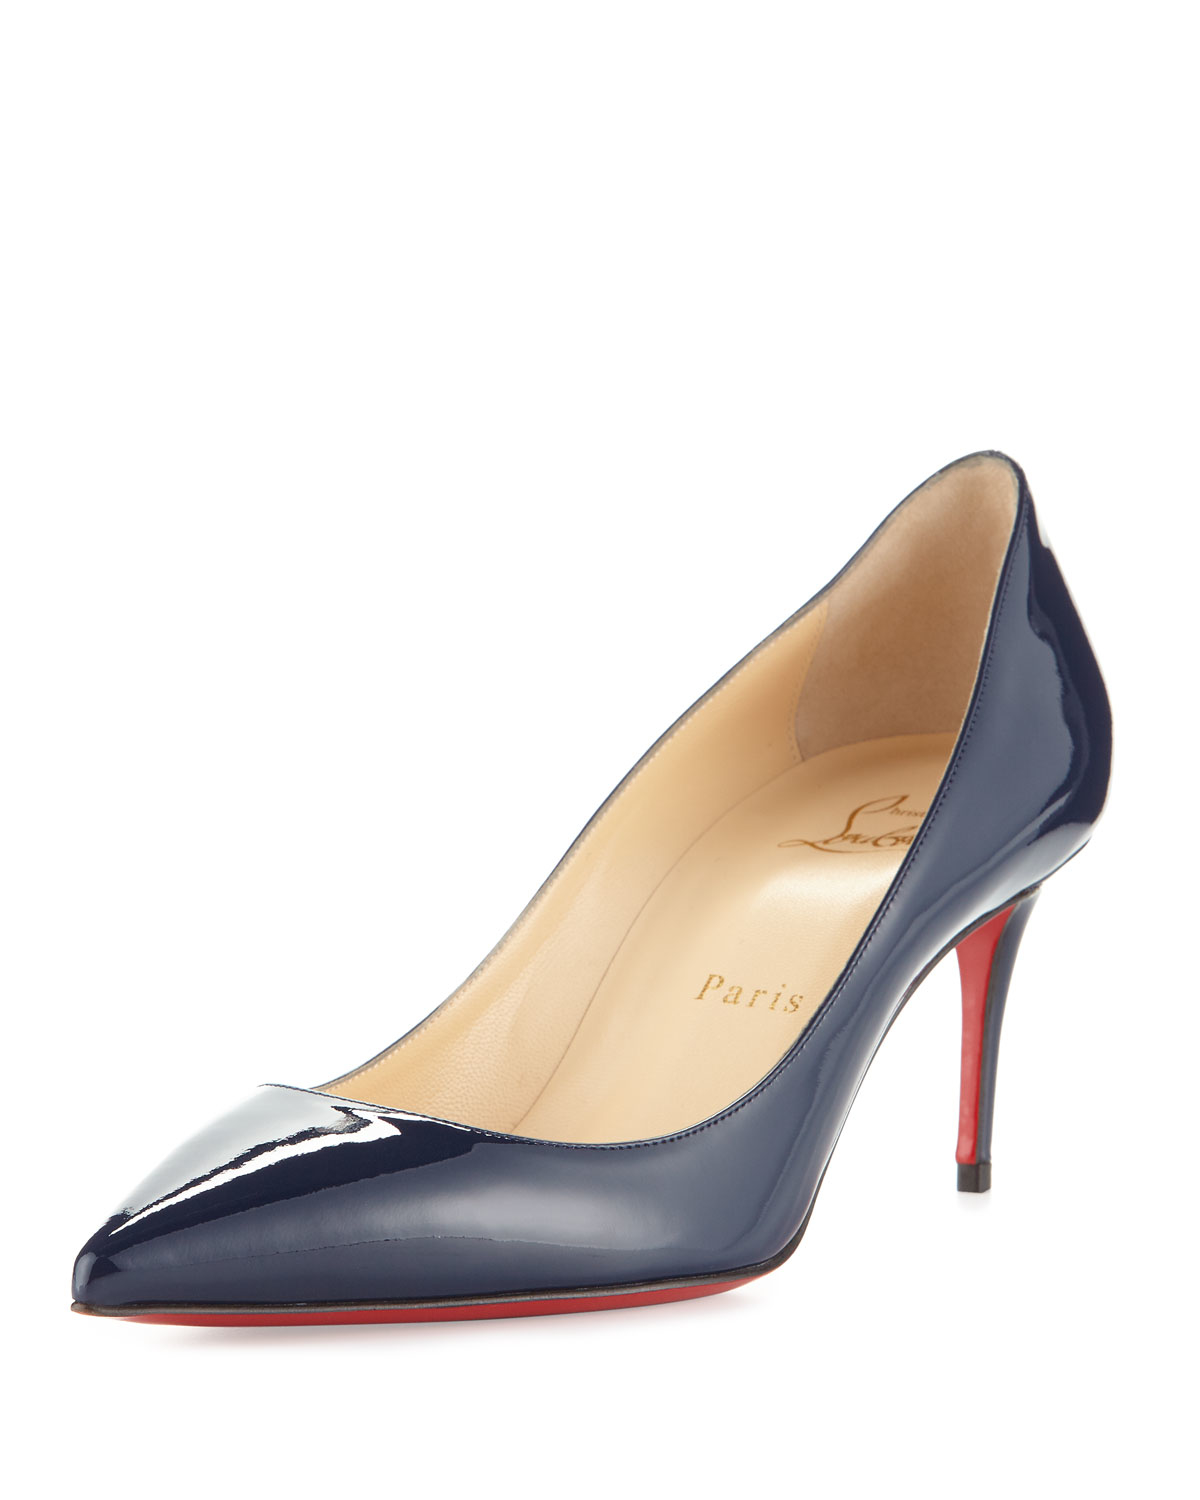 Christian Louboutin Shoes | Heels, Wedges, Boots \u0026amp; Sneakers | Lyst